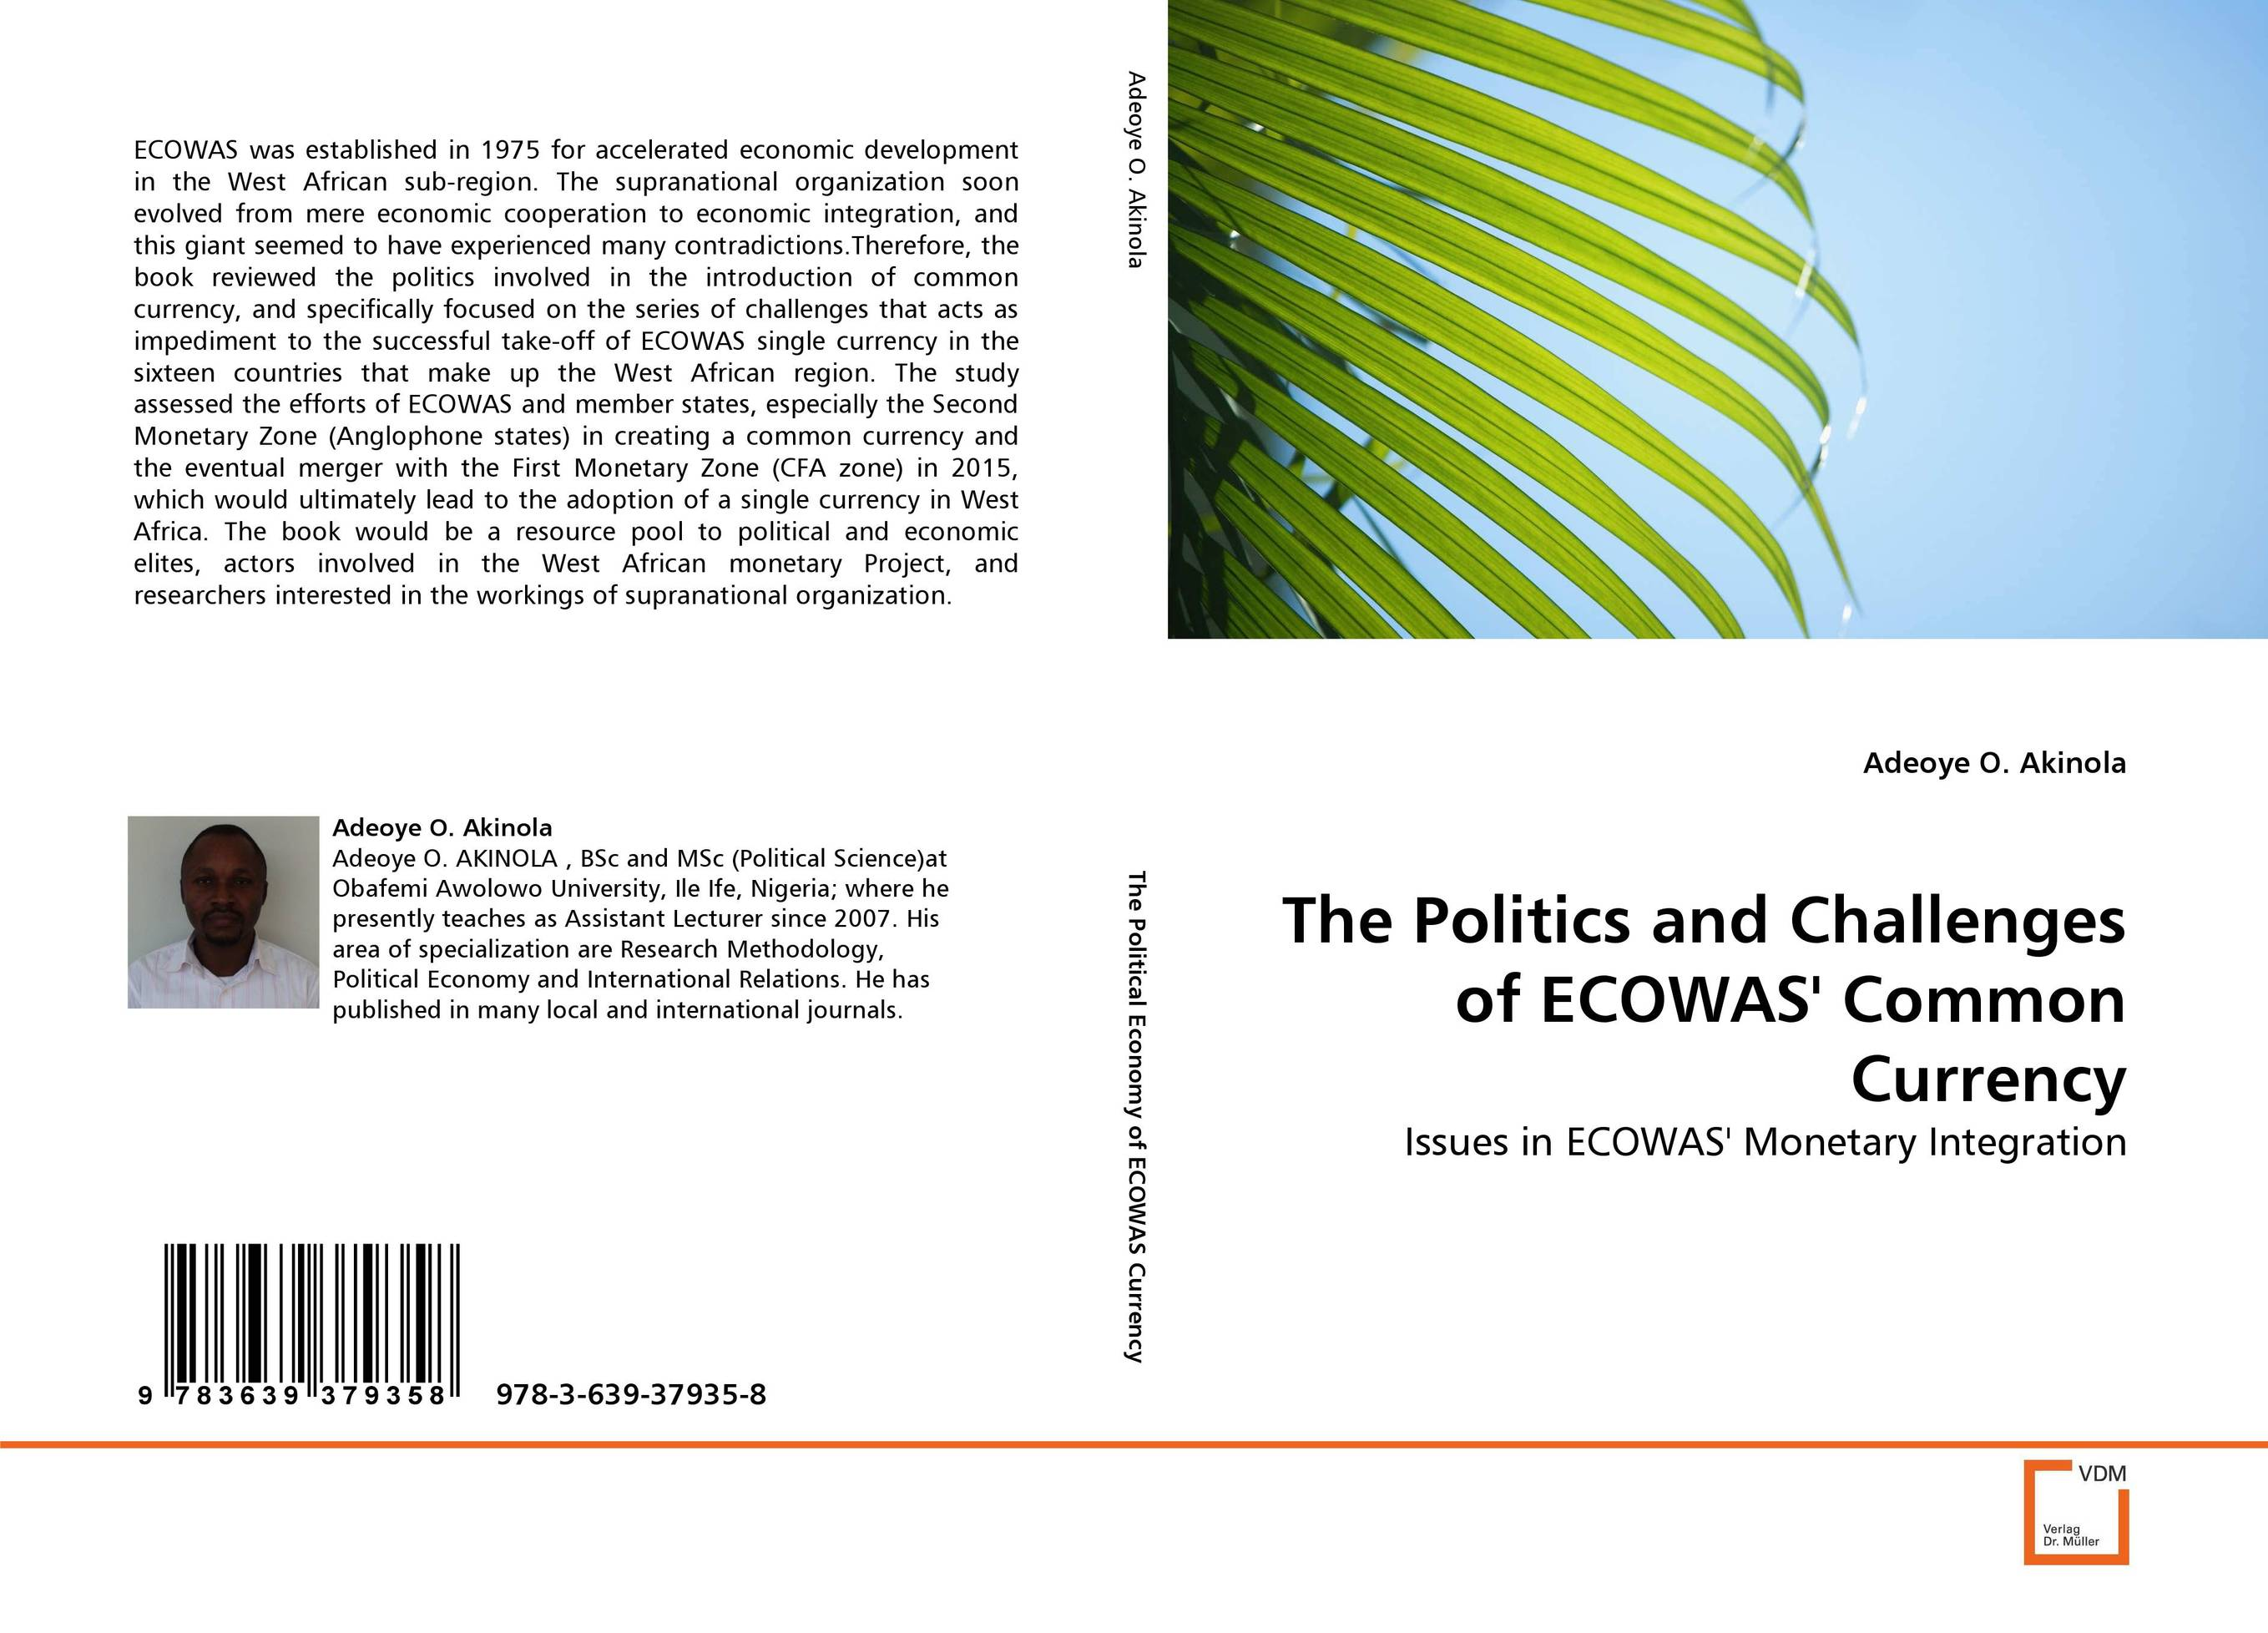 The Politics and Challenges of ECOWAS'' Common Currency herman cain economic warfare secrets of wealth creation in the age of welfare politics